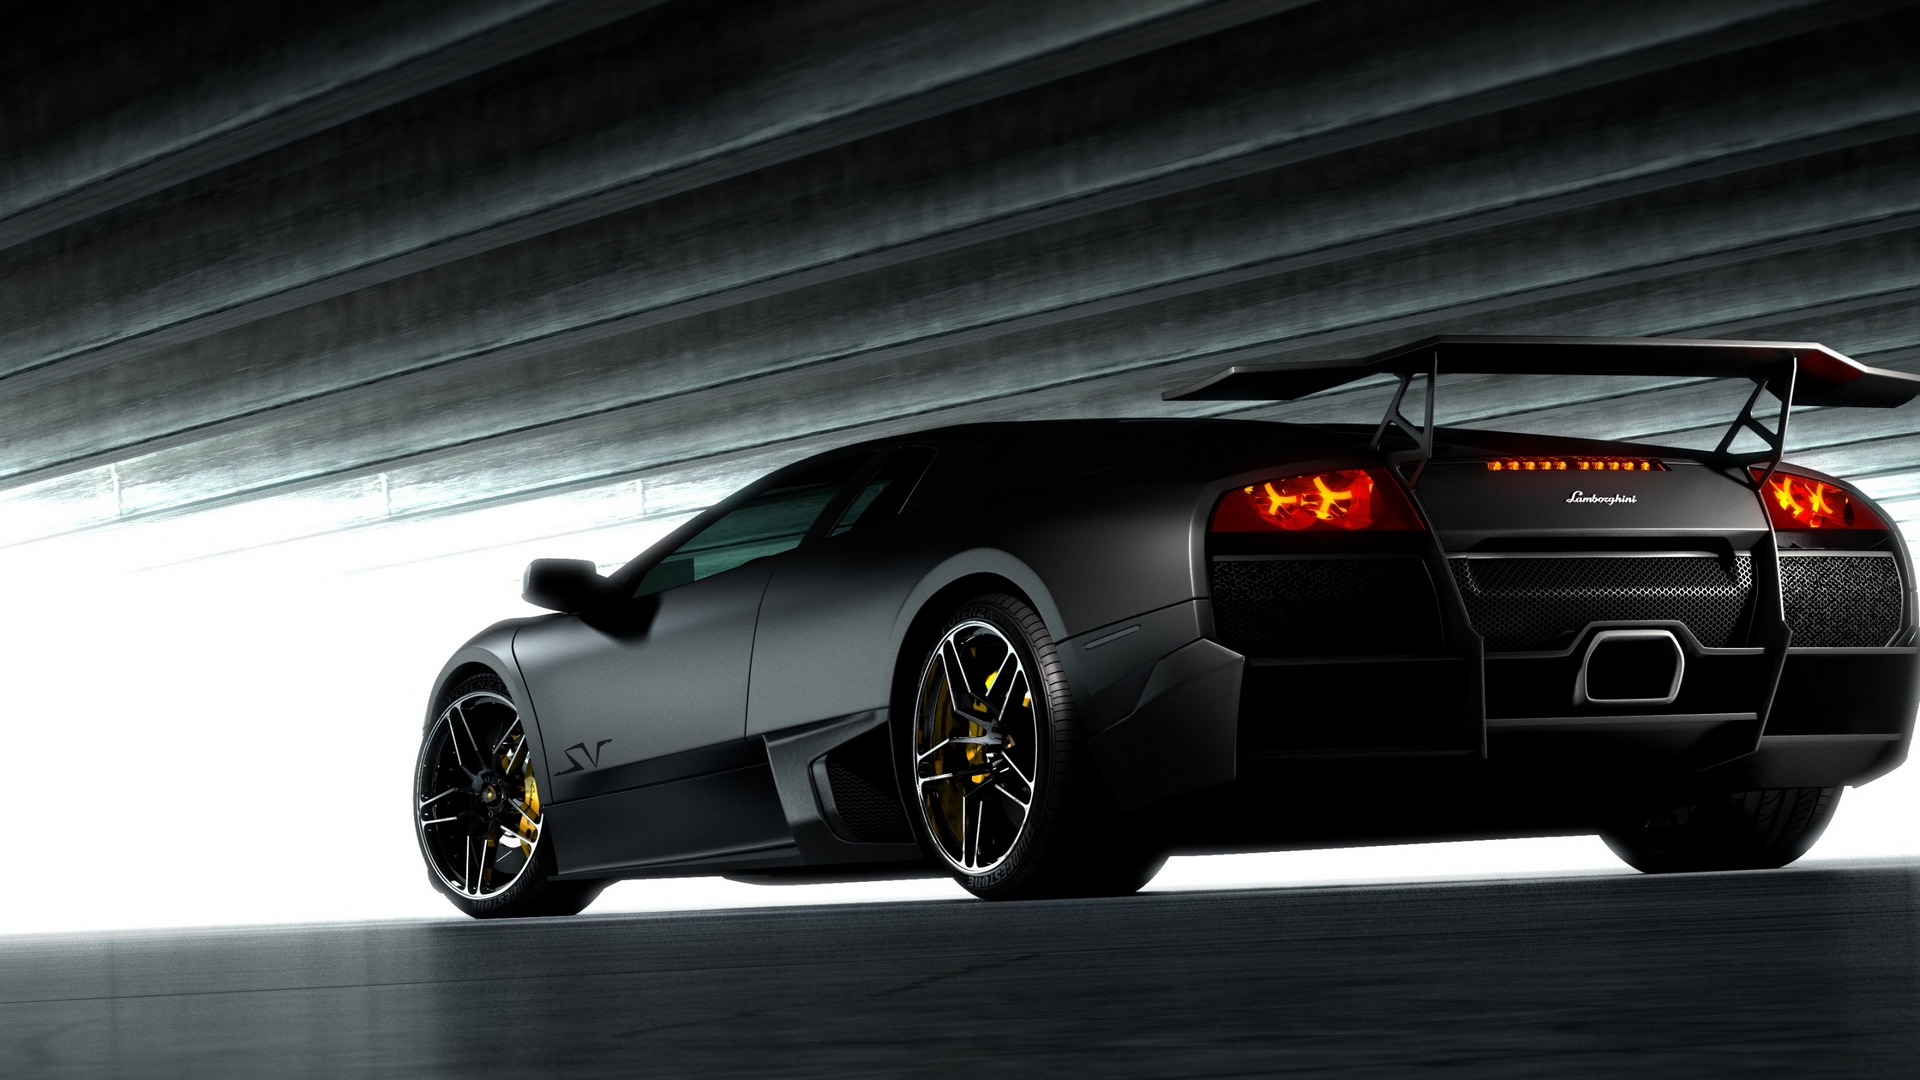 1920x1080 Download Lamborghini Murcielago LP670 4 SV Wallpaper | Free  Wallpapers